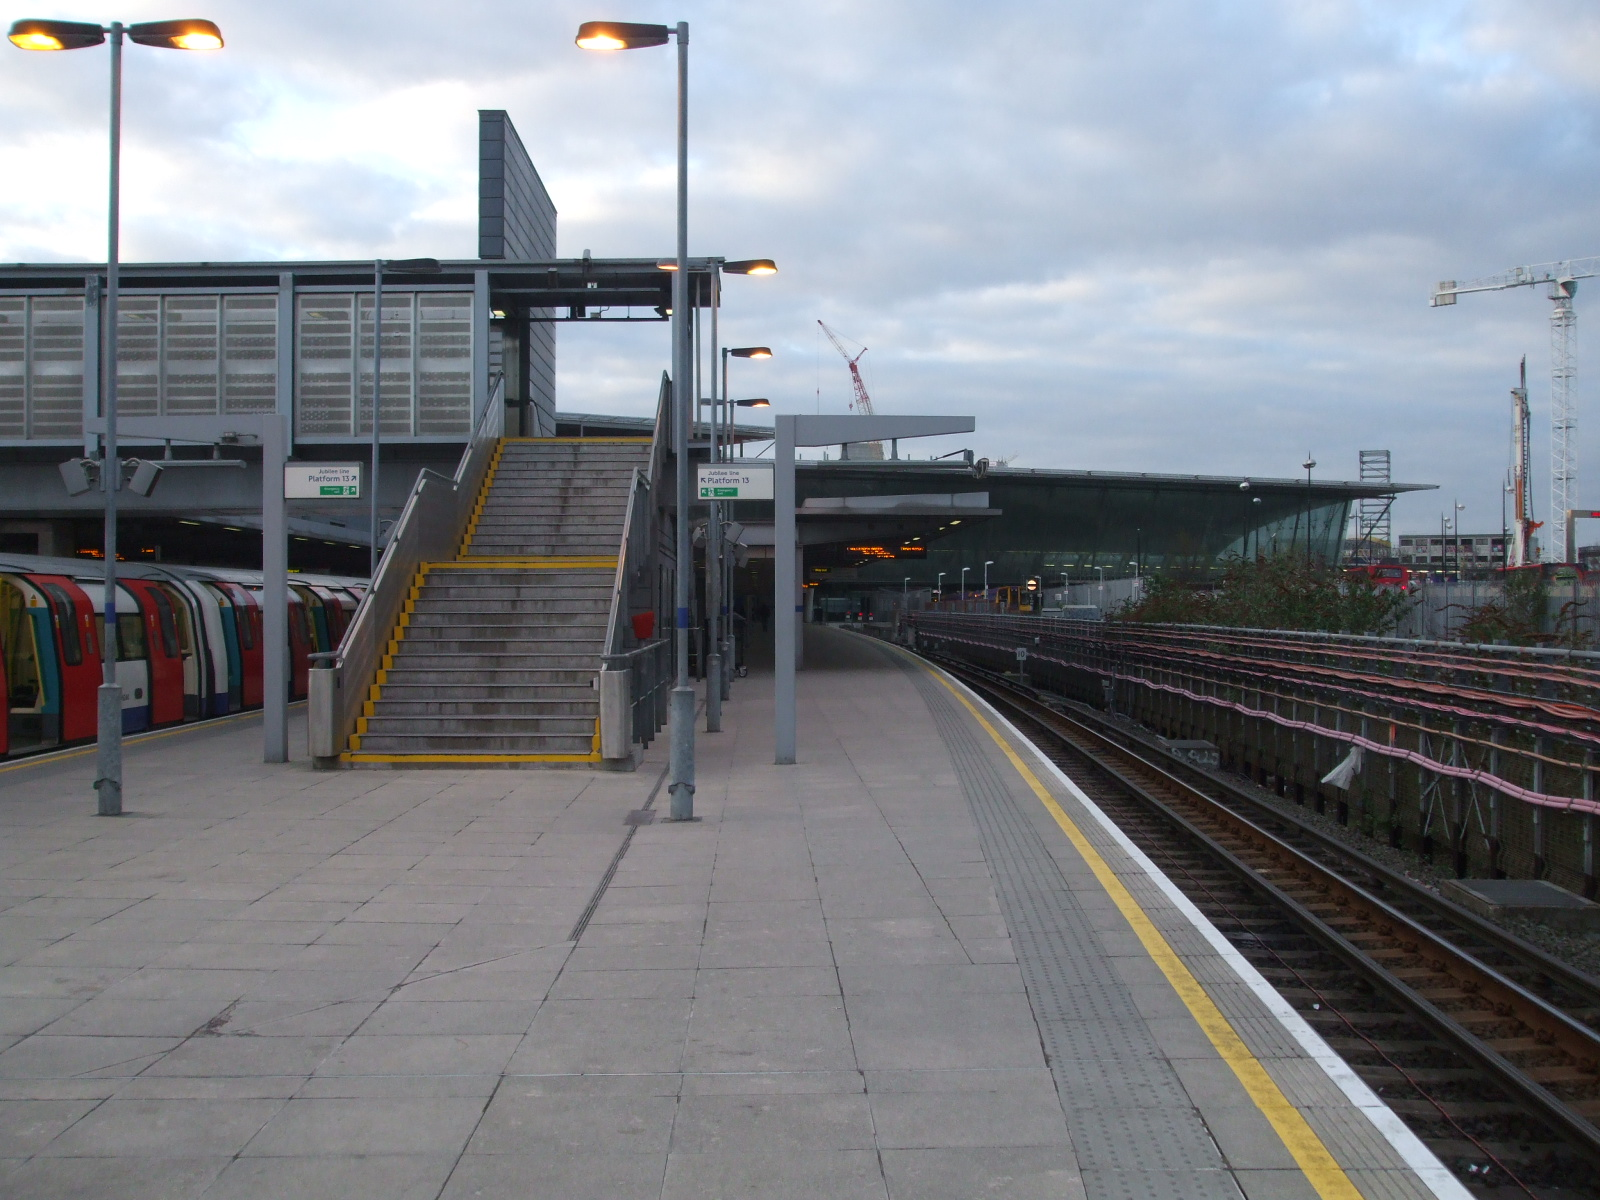 File:Stratford station Jubilee platform 15 look north.JPG ...